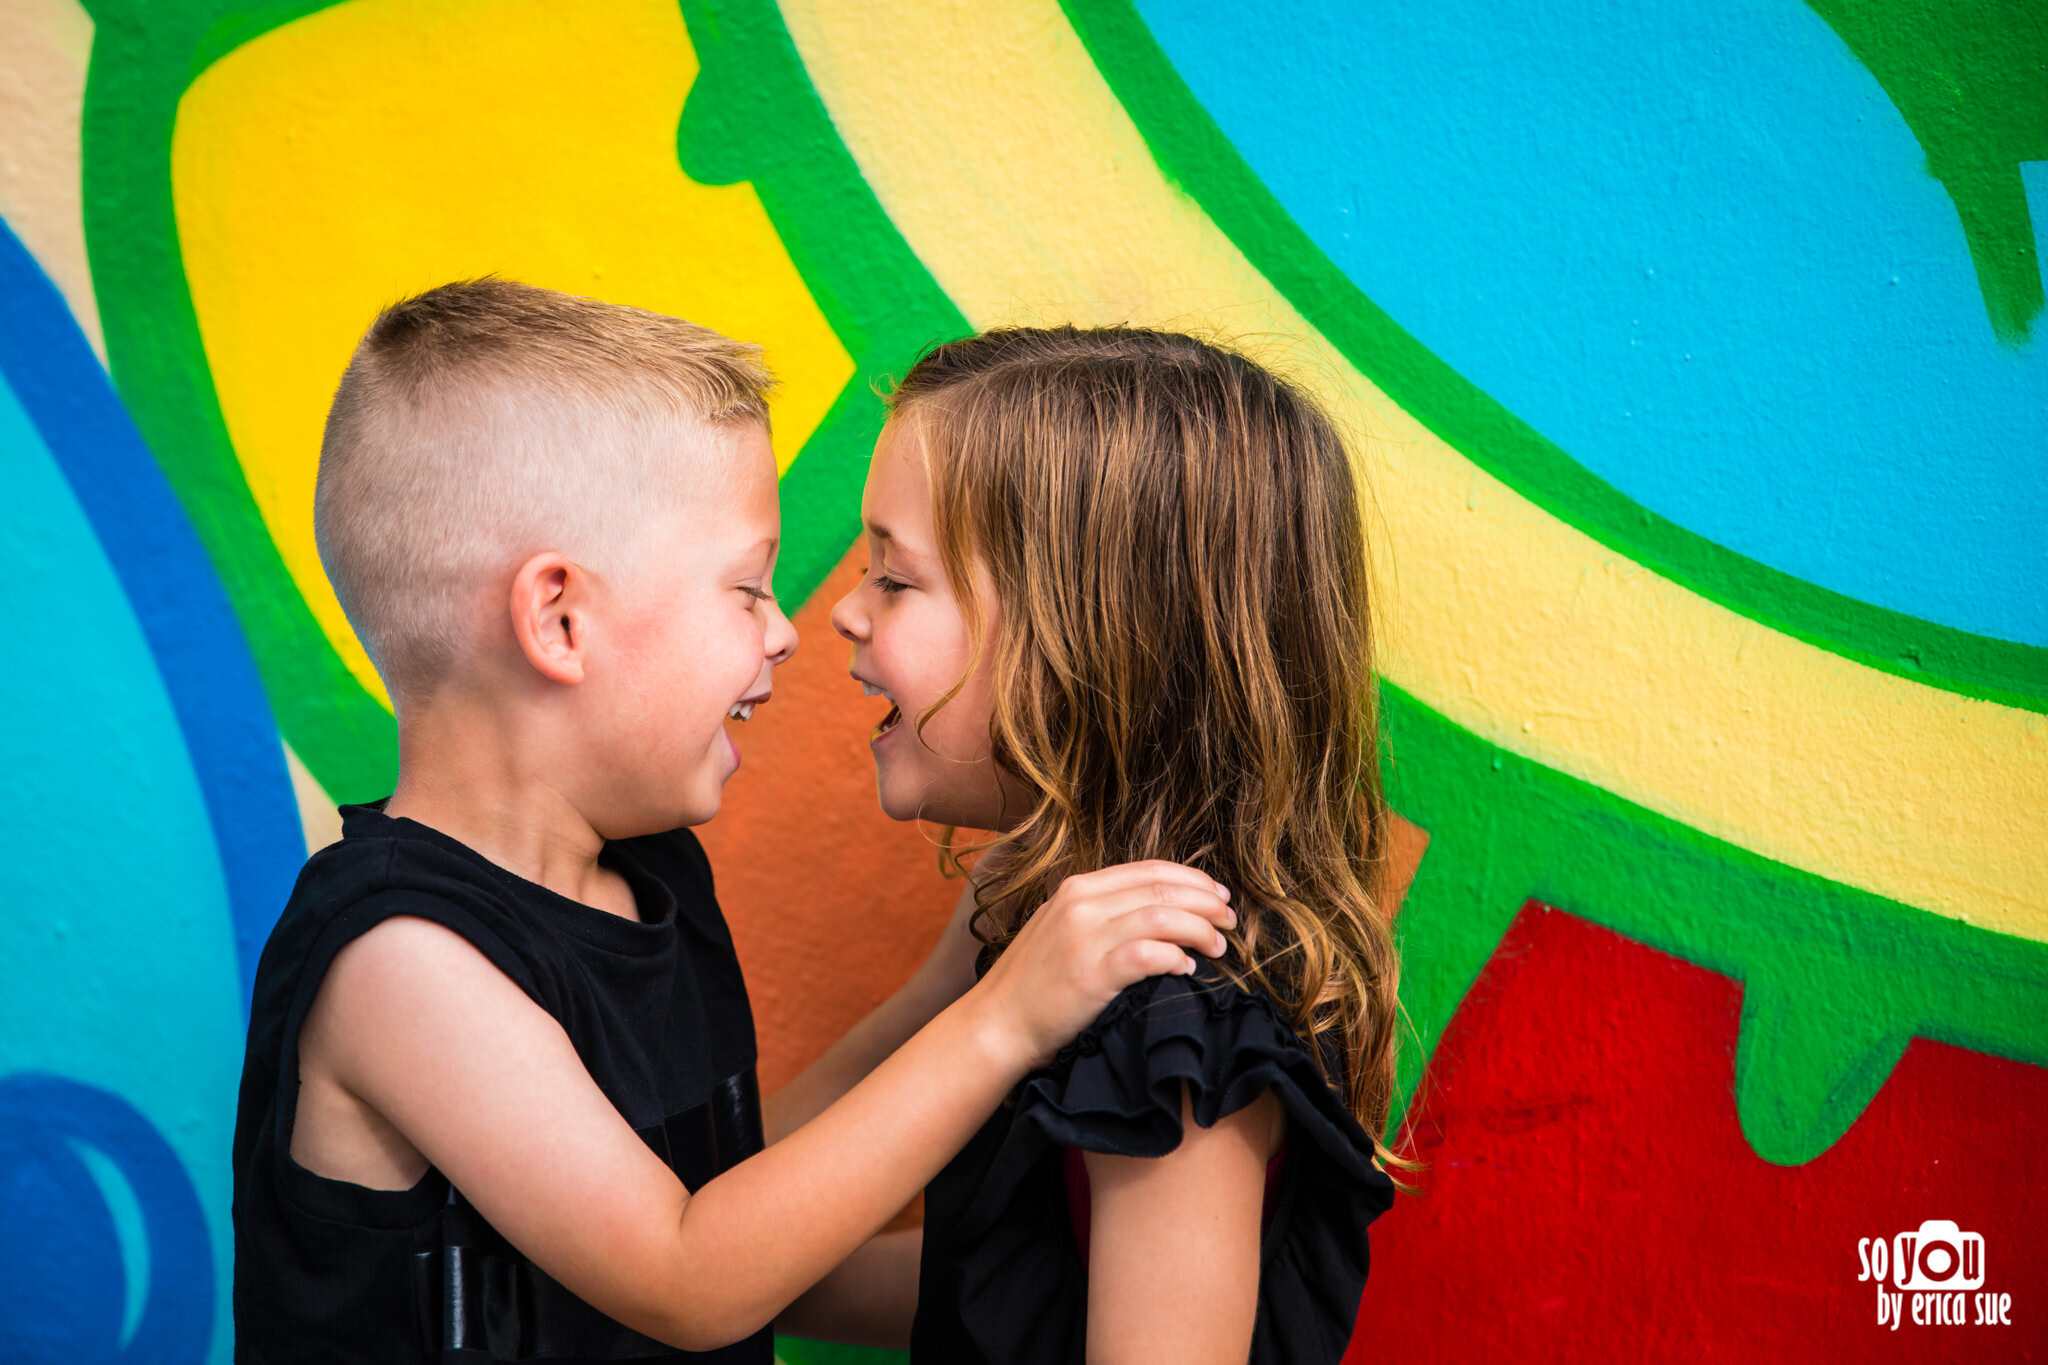 so-you-by-erica-wynwood-walls-lifestyle-family-photographer-session-1667.JPG